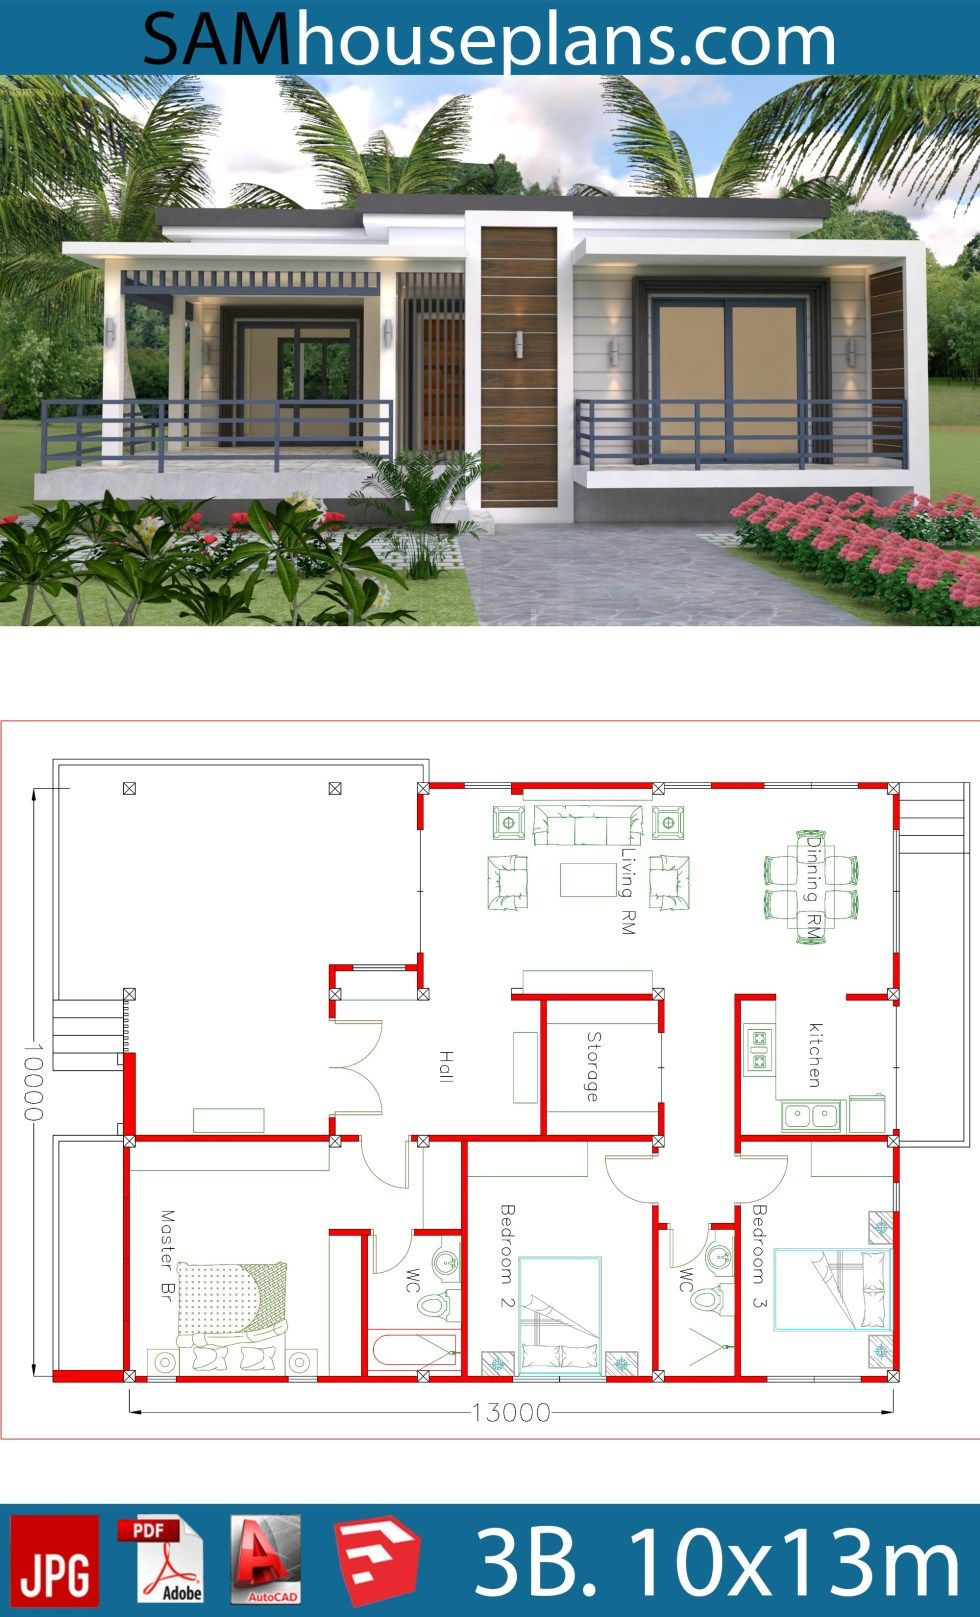 House Plans 10x13m With 3 Bedrooms Sam House Plans Small Modern House Plans My House Plans Beautiful House Plans